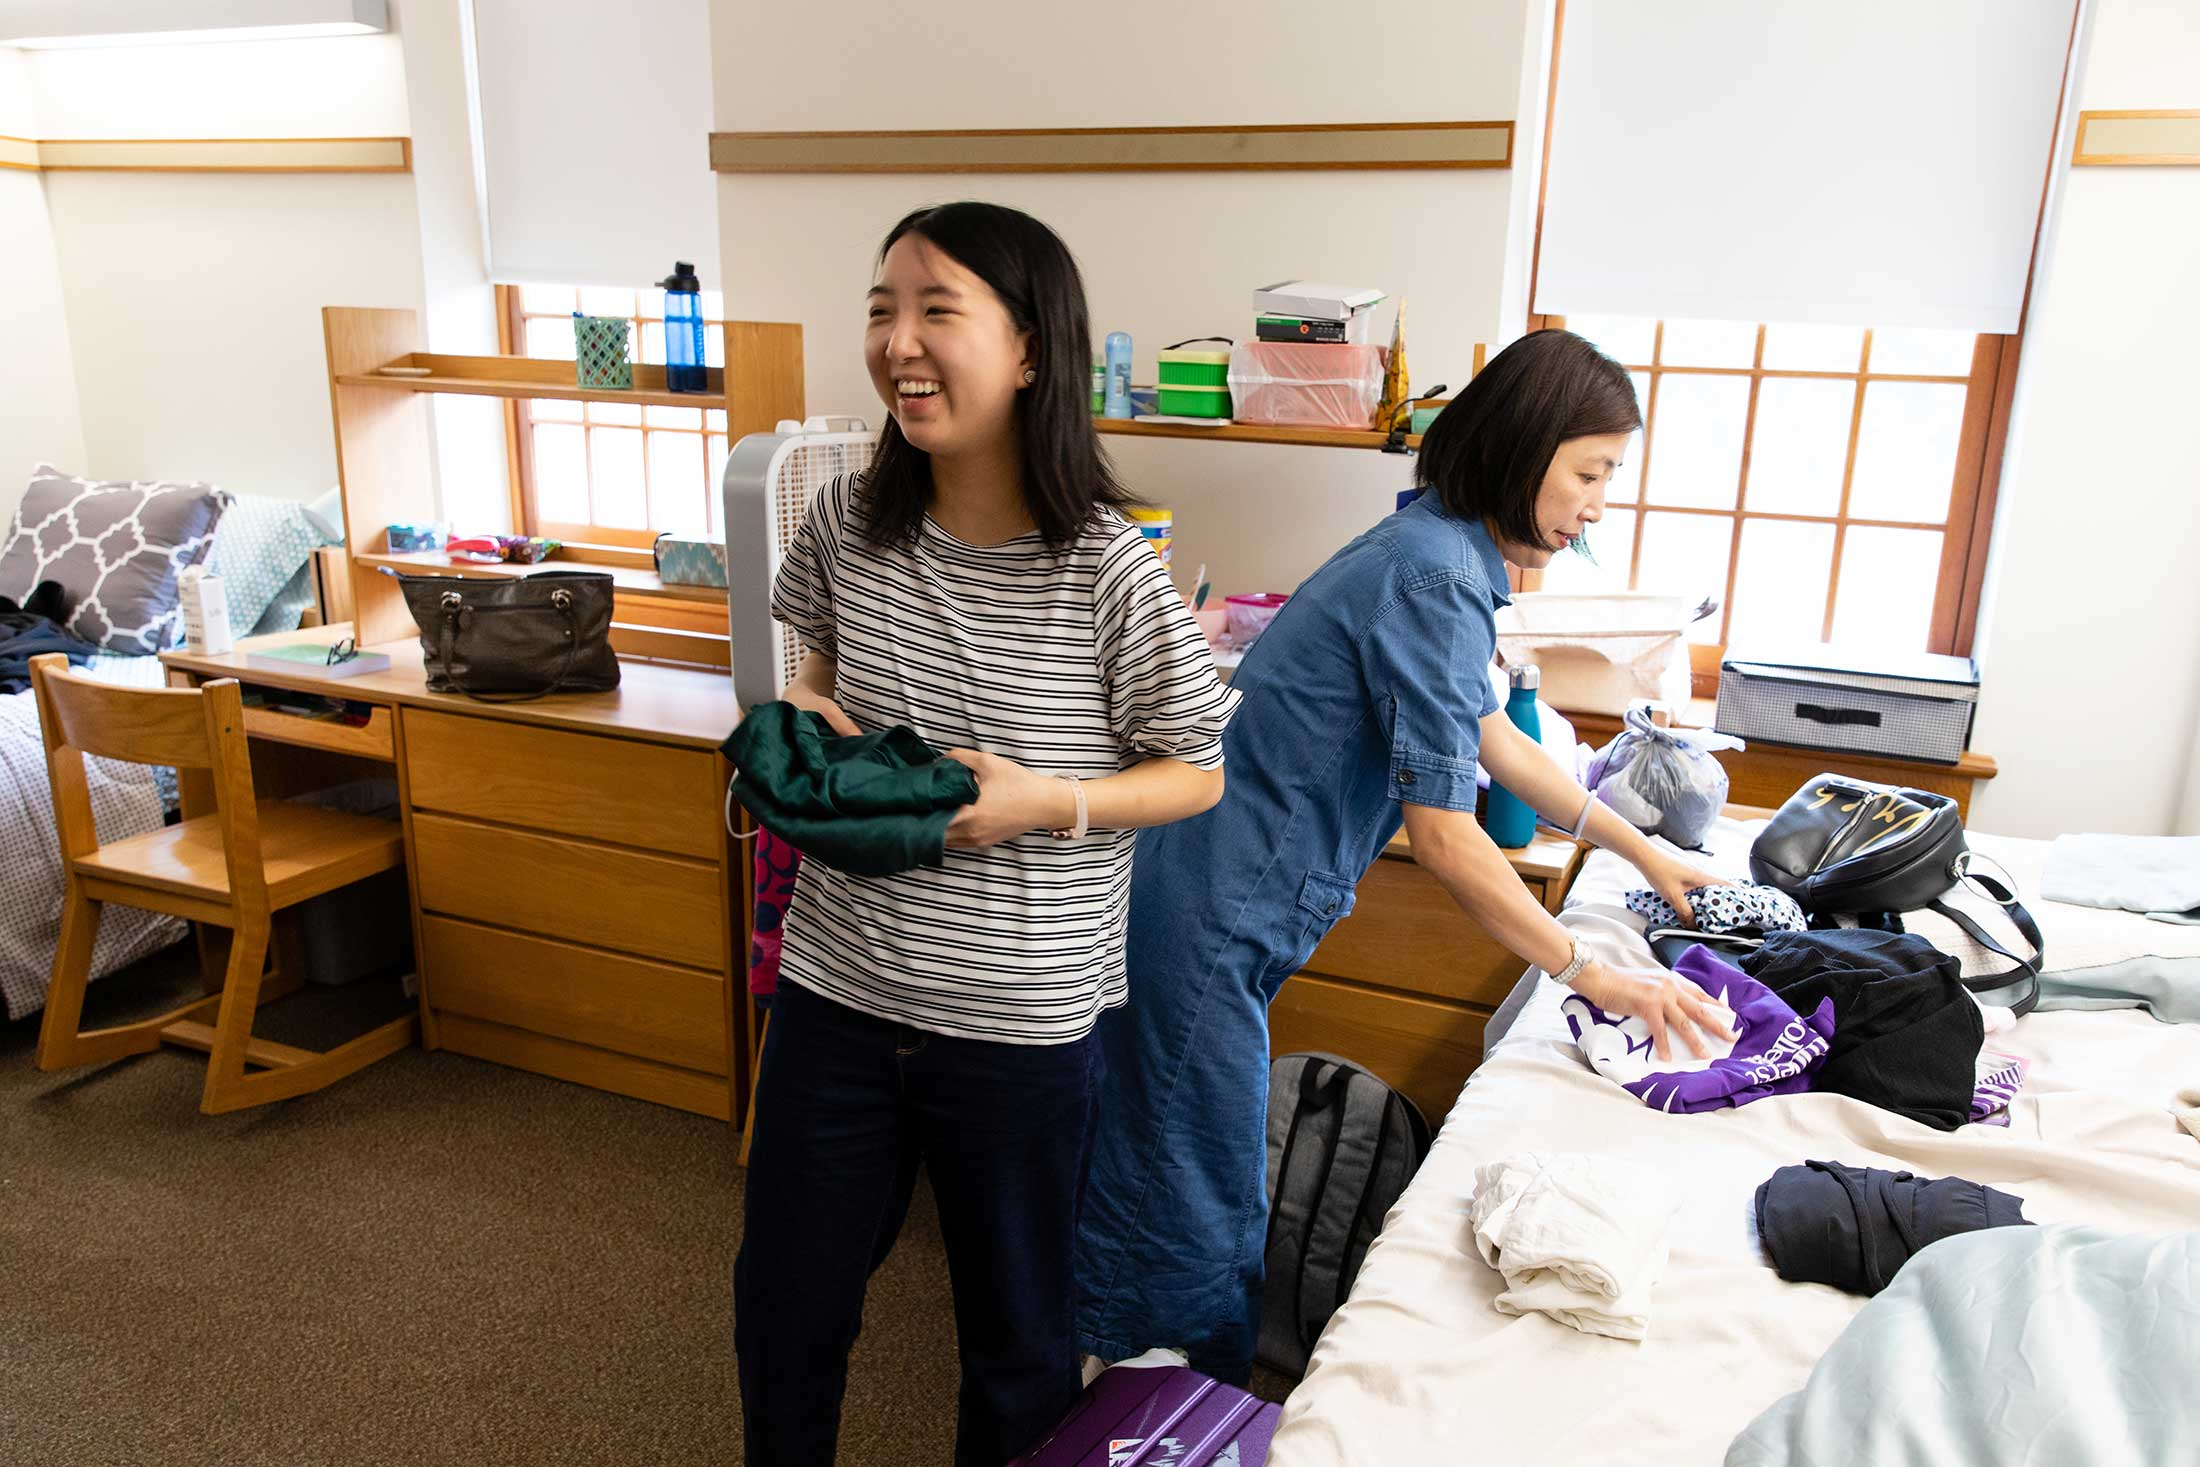 A new student unpacks her belongings in the residence hall with the help of her mother